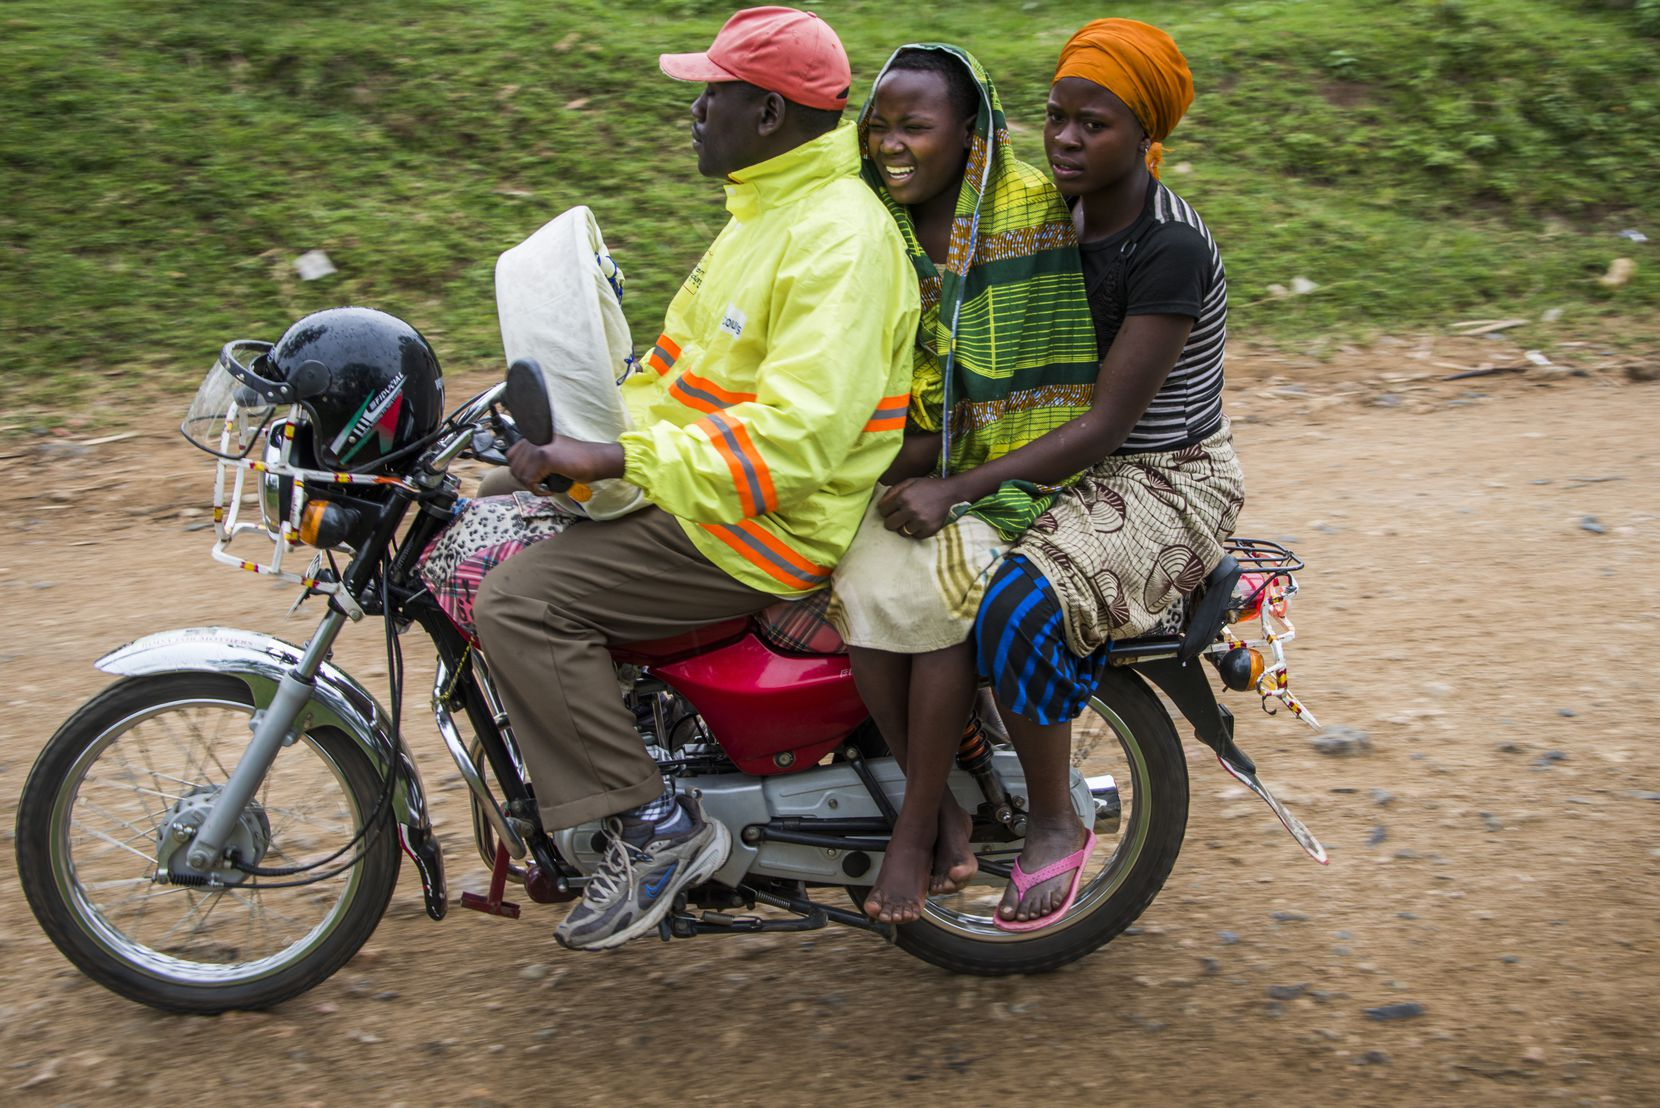 Motorcycles, called boda bodas, are contracted to respond immediately when a woman goes into labor. (Smiley N. Pool © 2014)